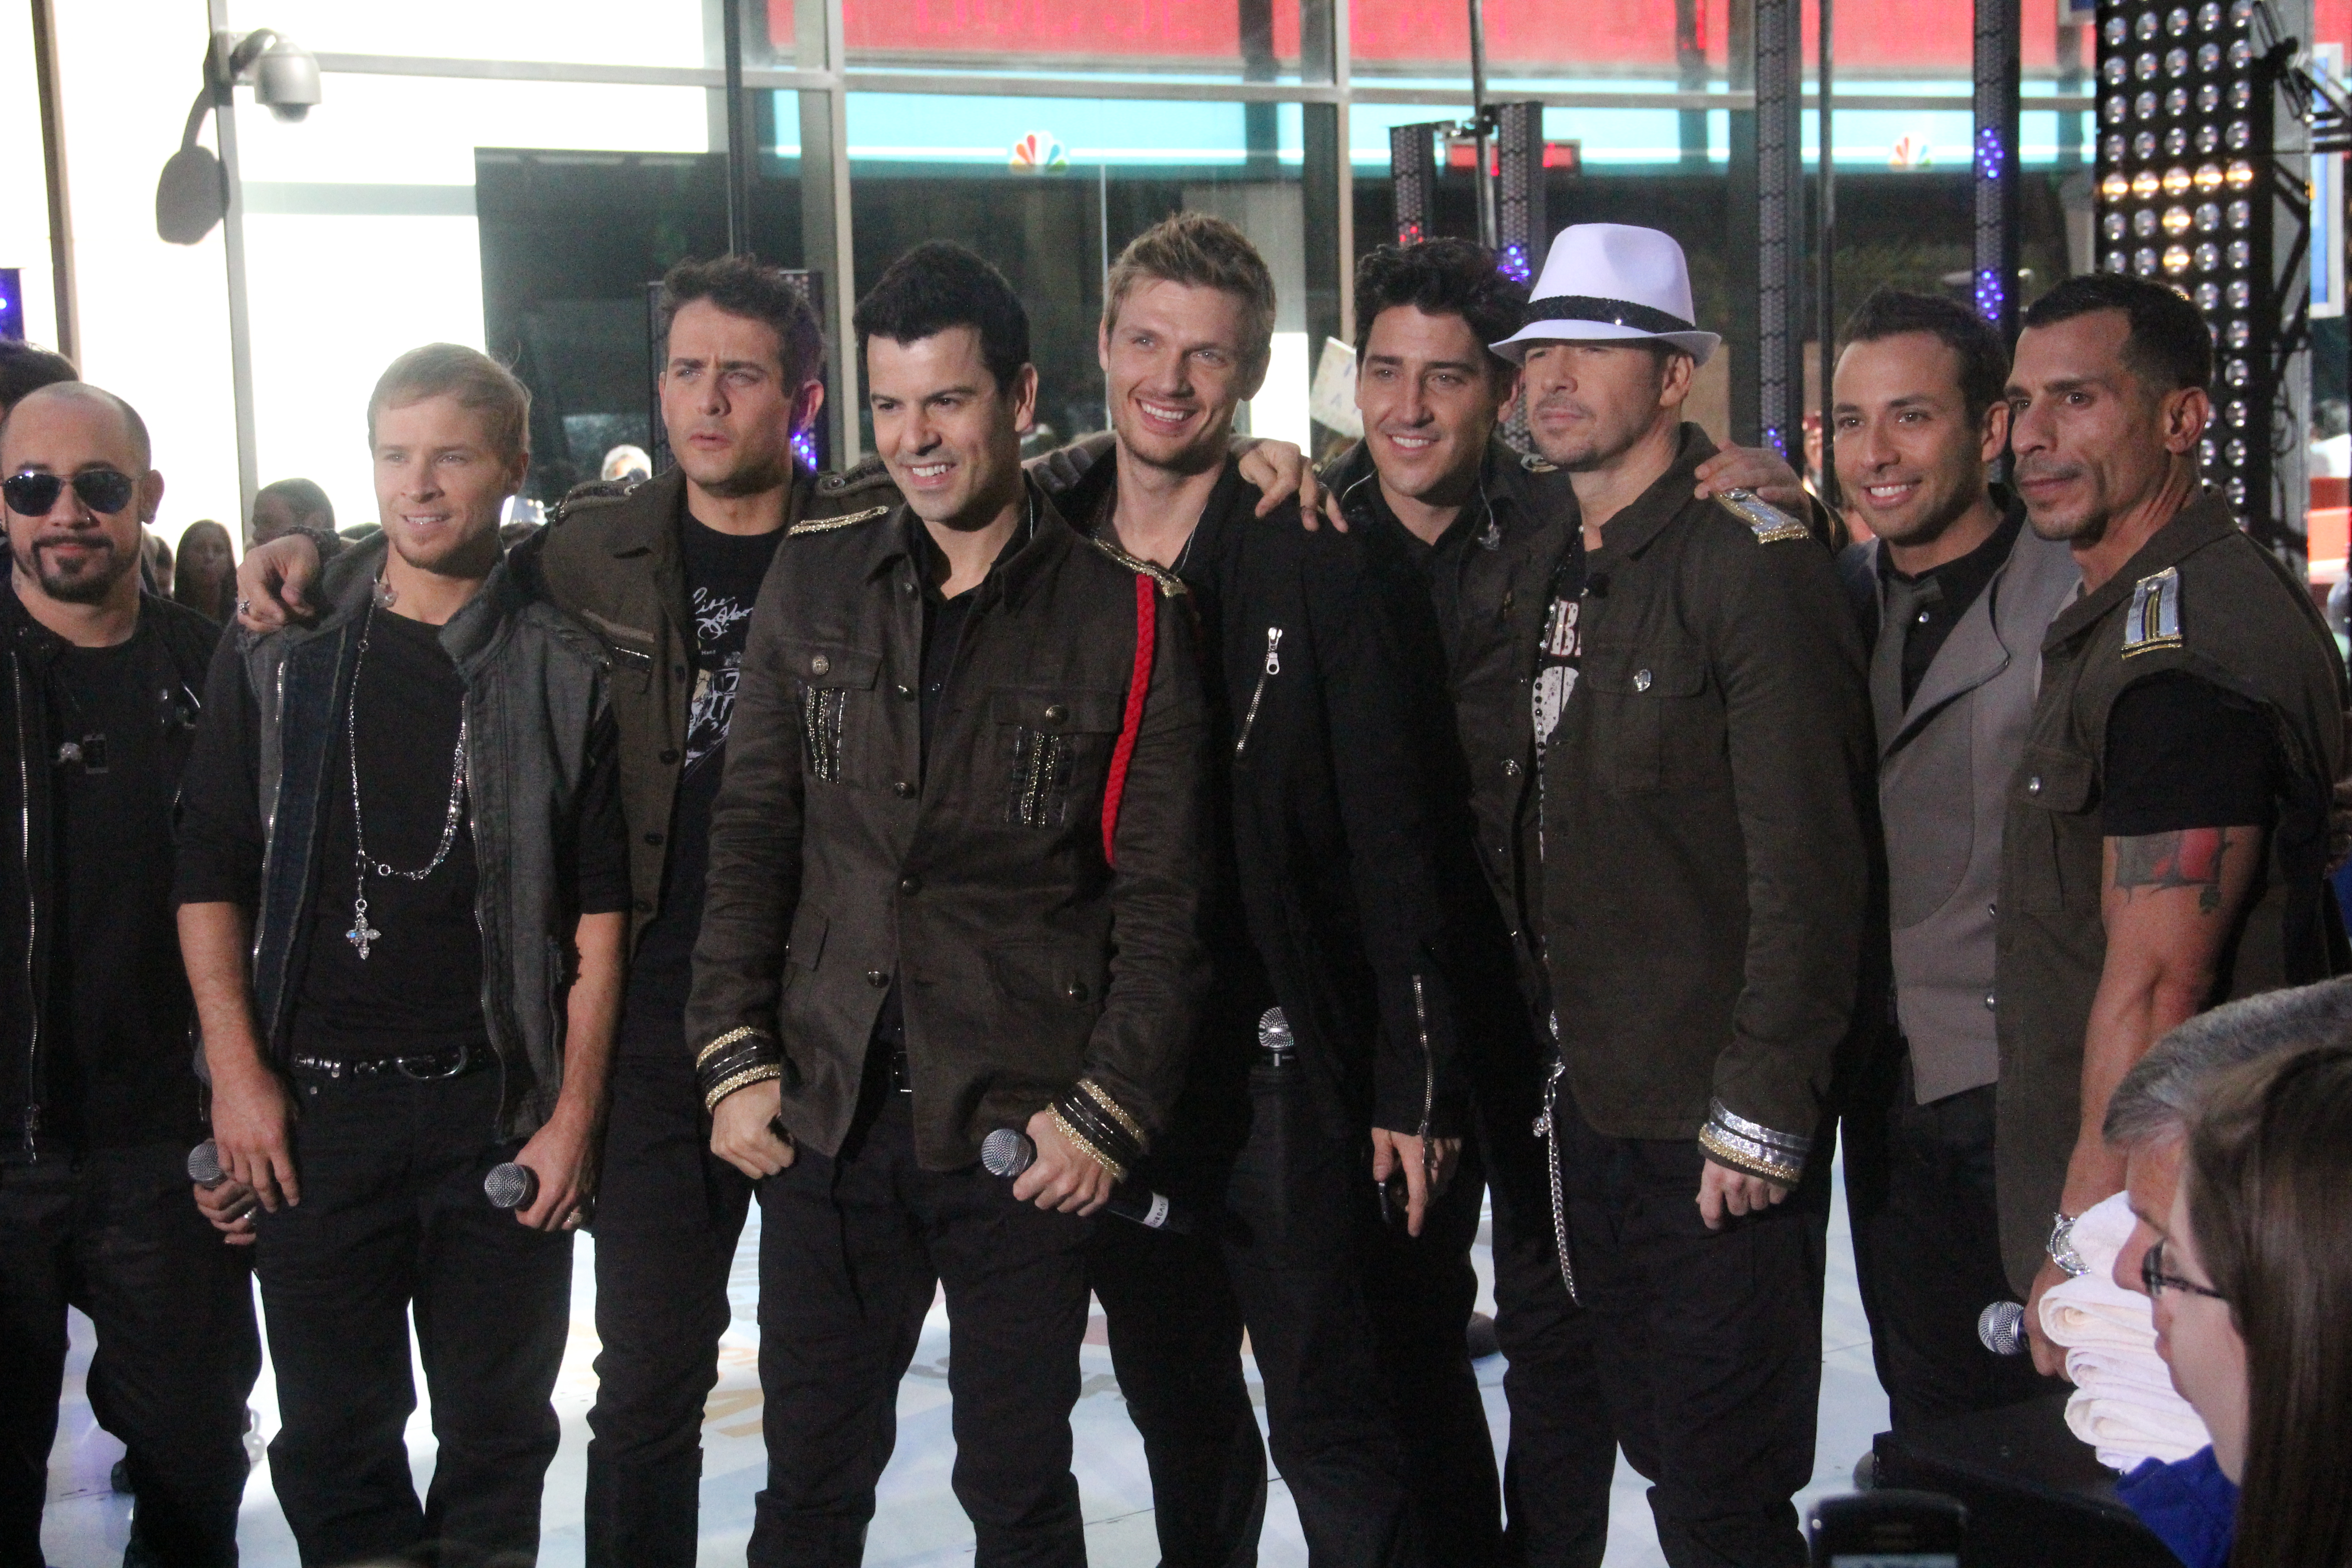 New Kids On The Block and Backstreet Boys 2011